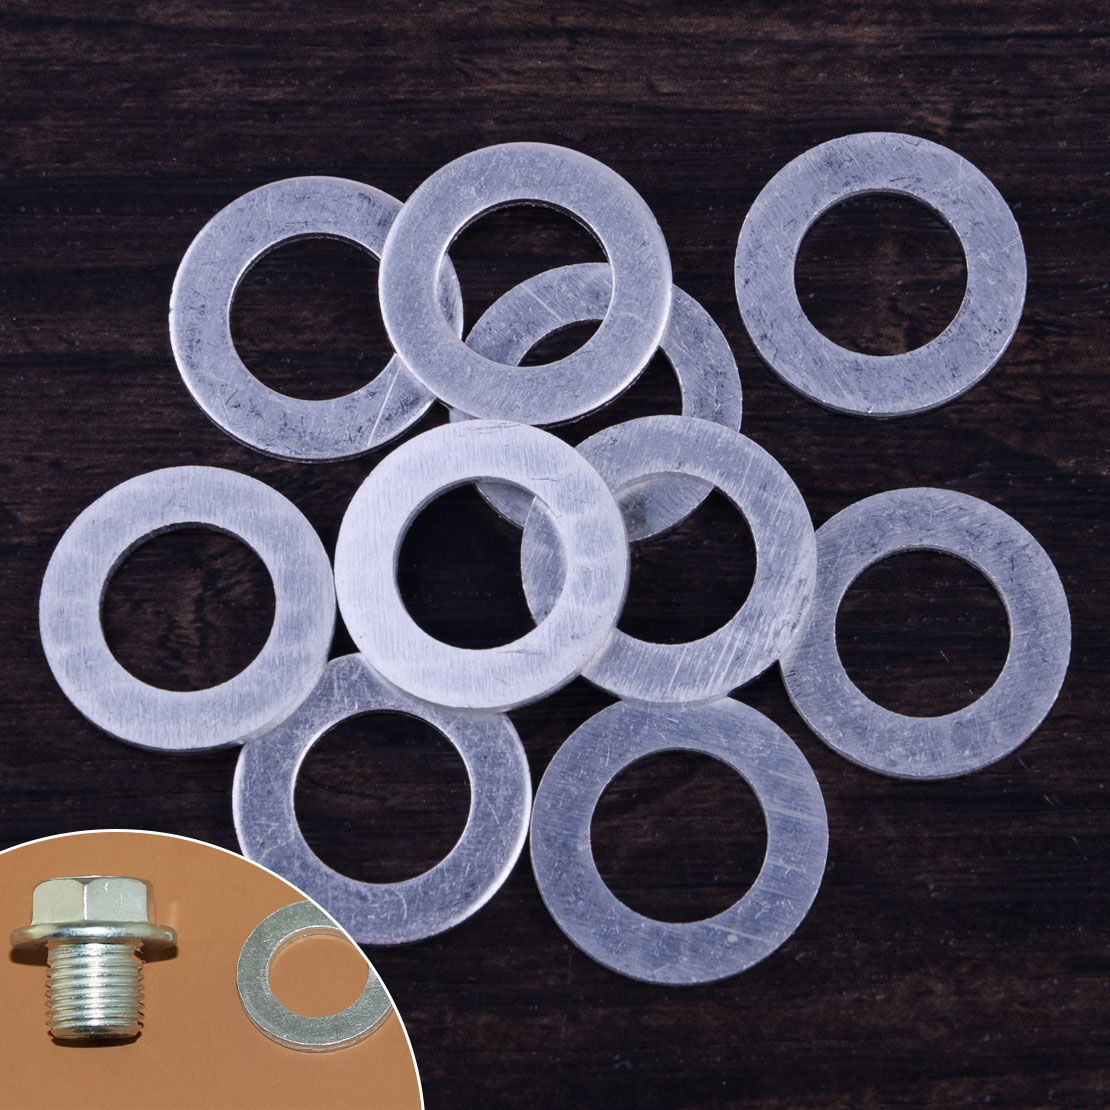 DWCX 10pcs 14mm Silver Engine Oil Drain Plug Crush Washer Gasket 9410914000  fit for Honda Civic